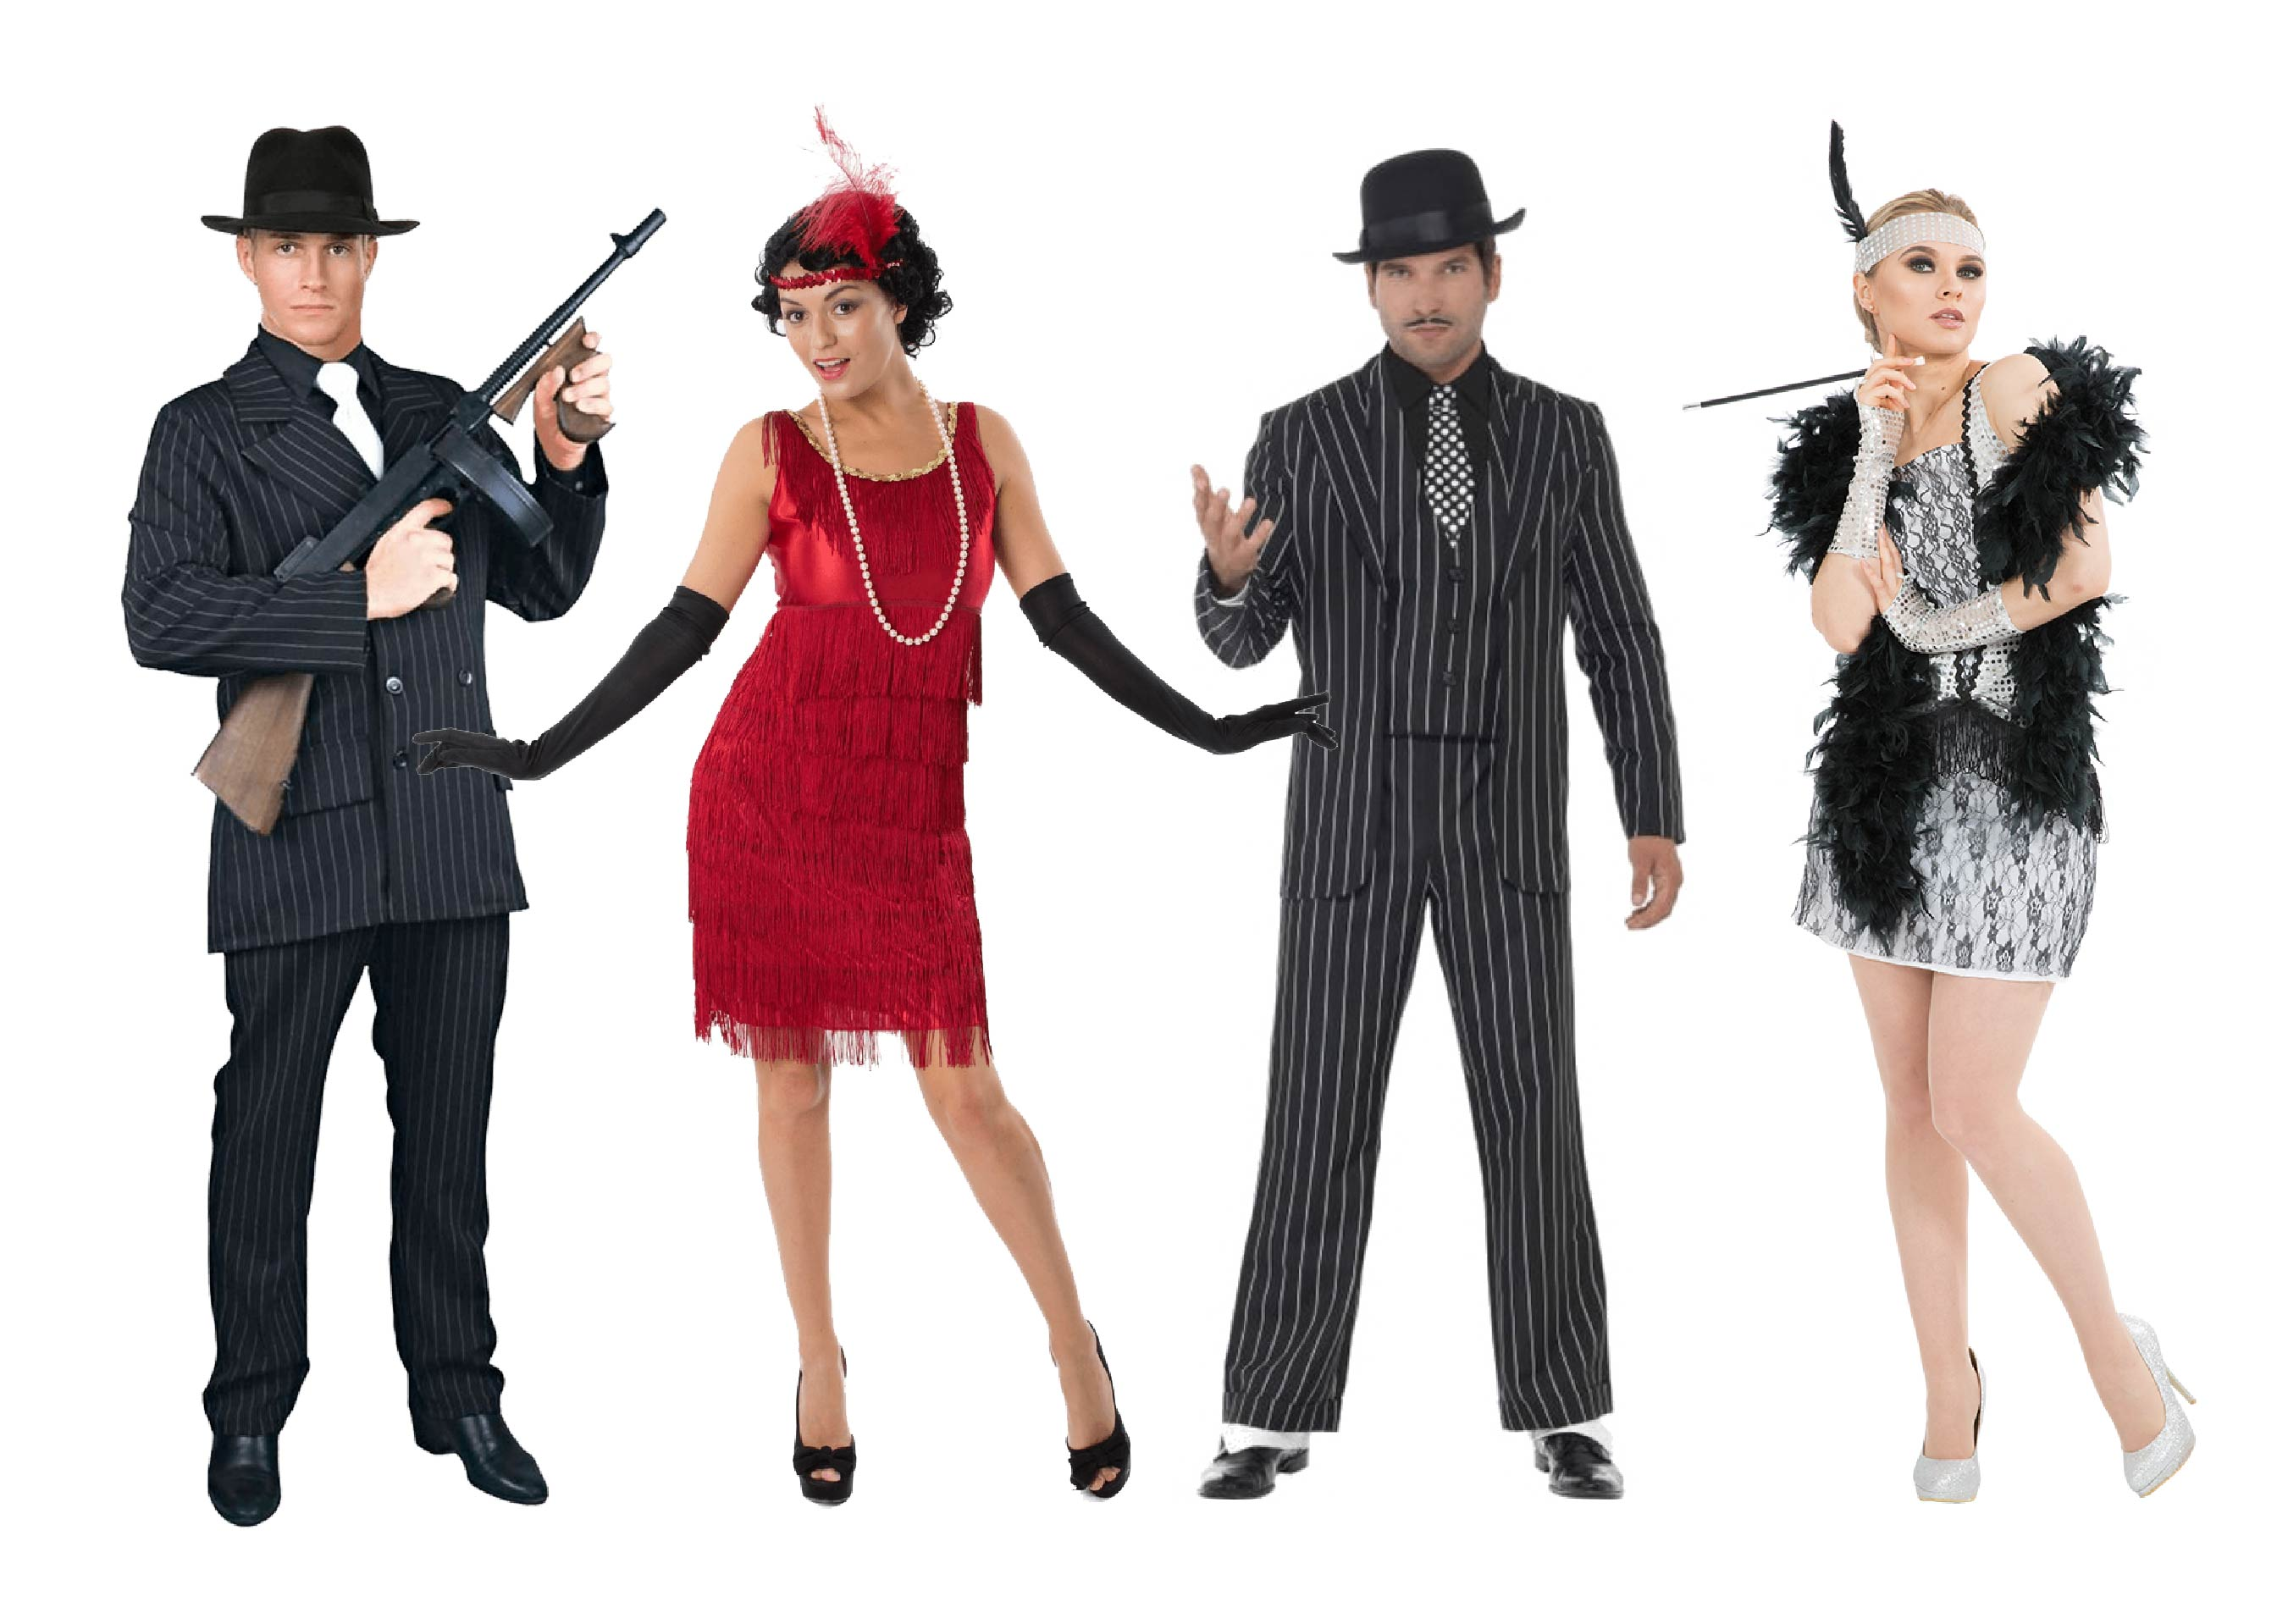 People dressed in 1920s gangsters and flappers.